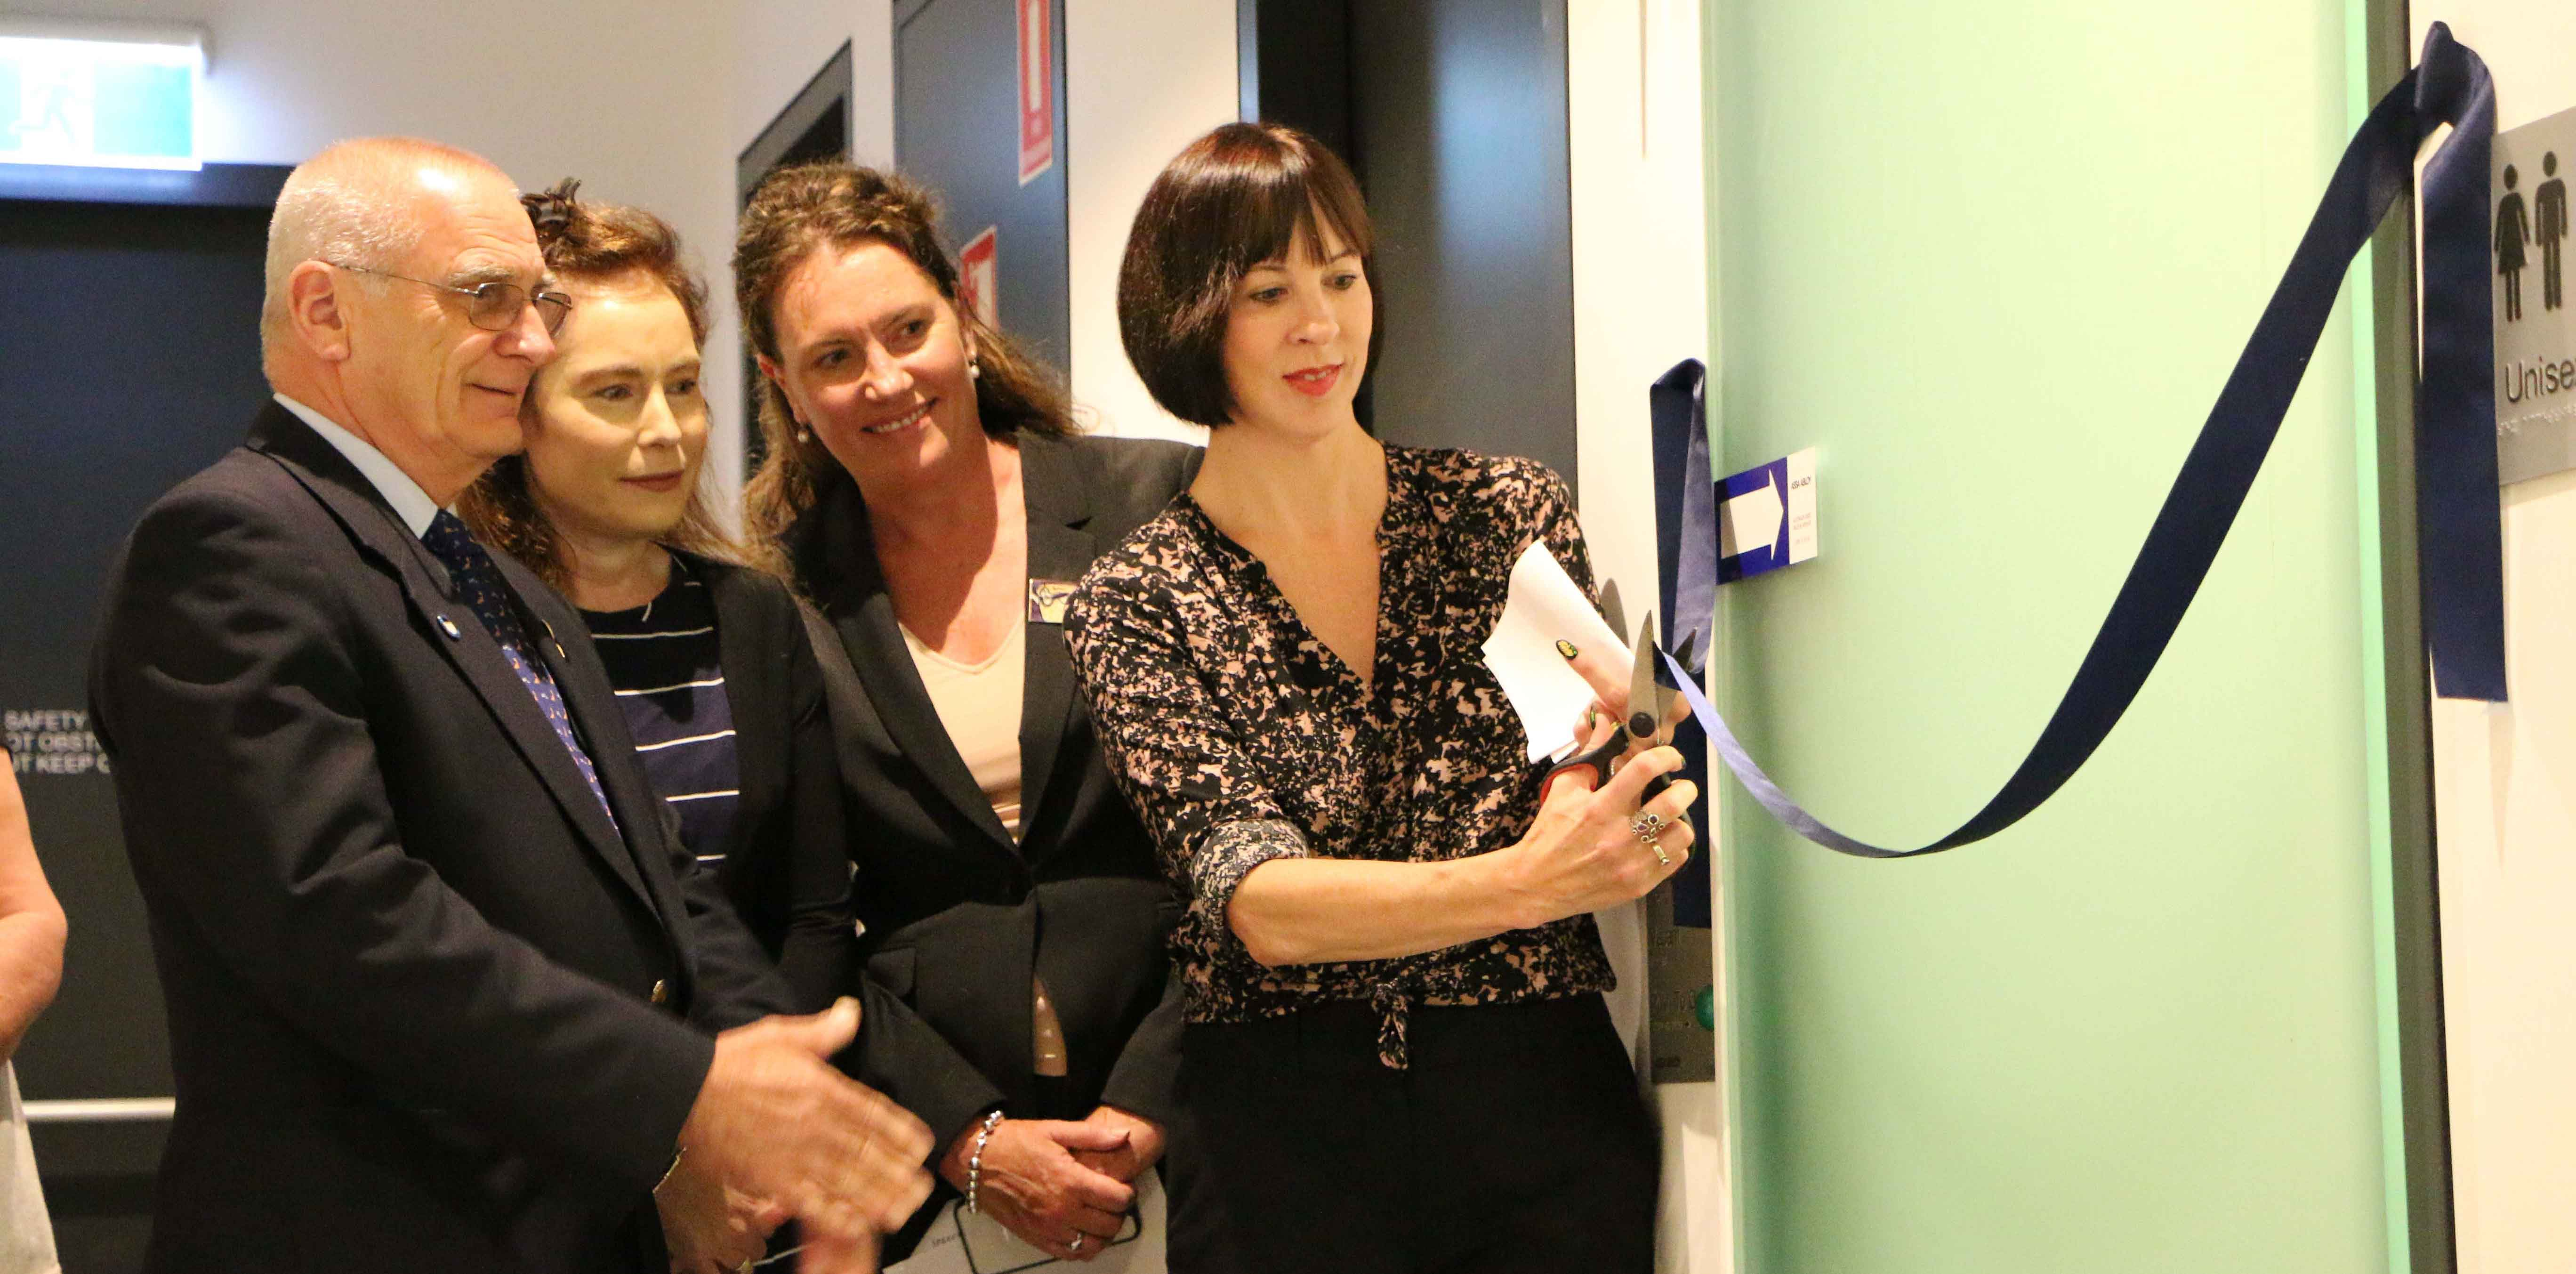 Deputy Mayor Cr Chris Van Der Kley, Aged & Disability Services Development Officer Prue Hardgrove, Member for Blue Mountains Trish Doyle and Cr Shae Foenander opening the facility.